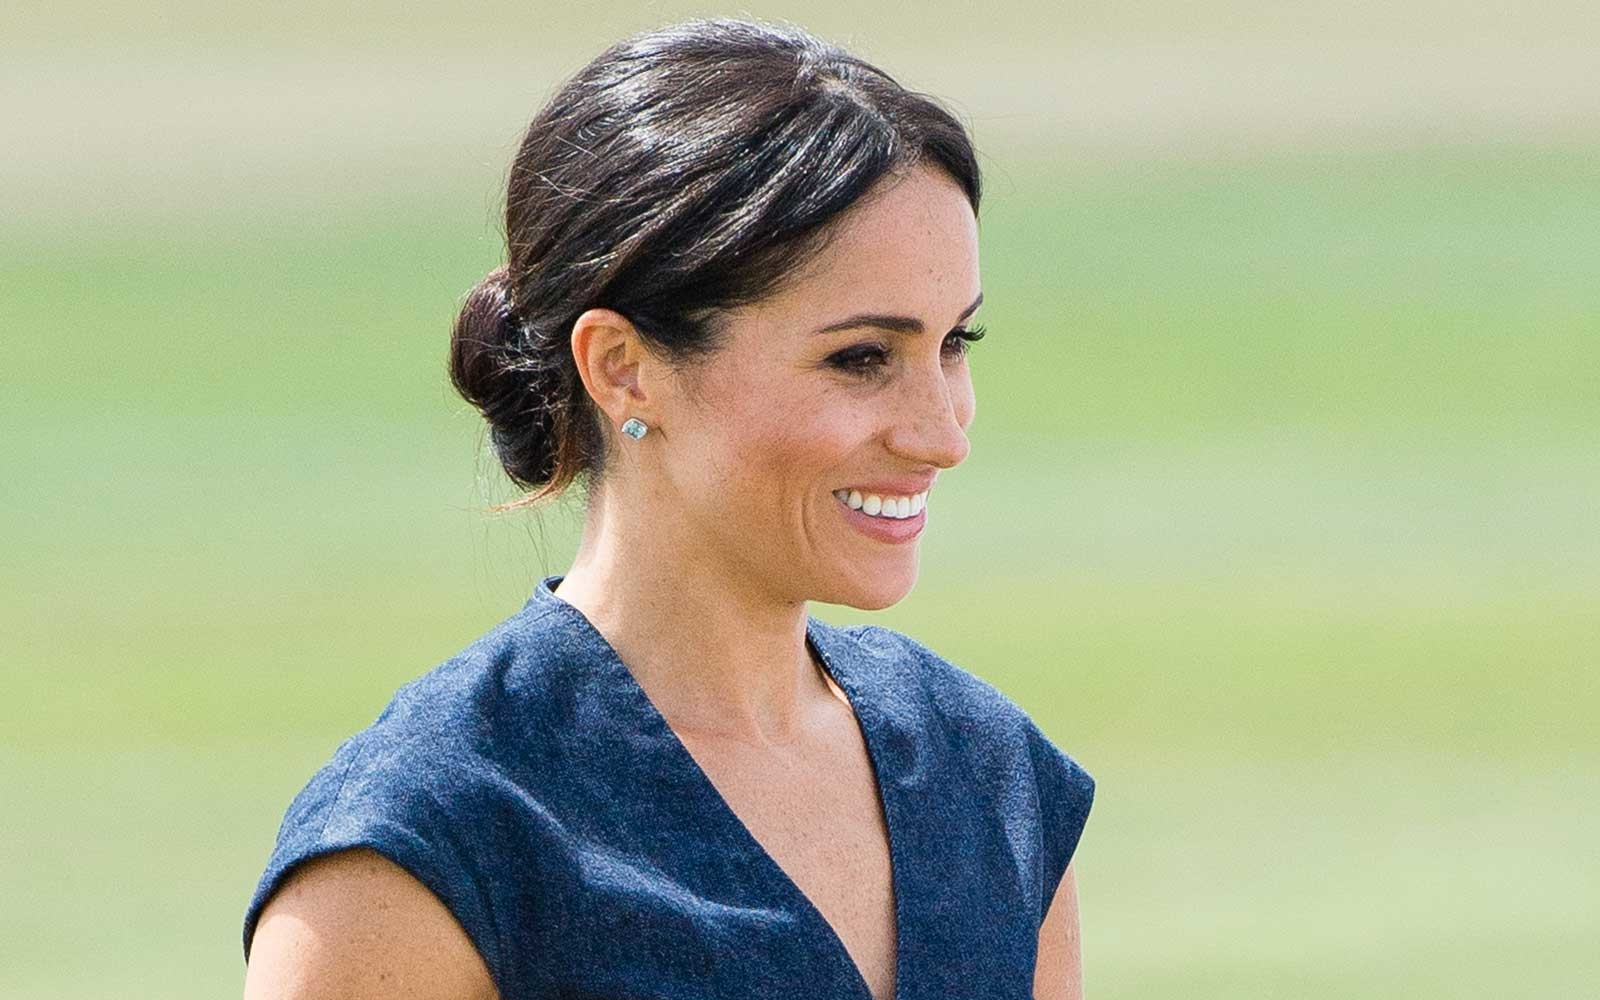 Meghan, Duchess of Sussex attends the Sentebale Polo 2018 held at the Royal County of Berkshire Polo Club on July 26, 2018